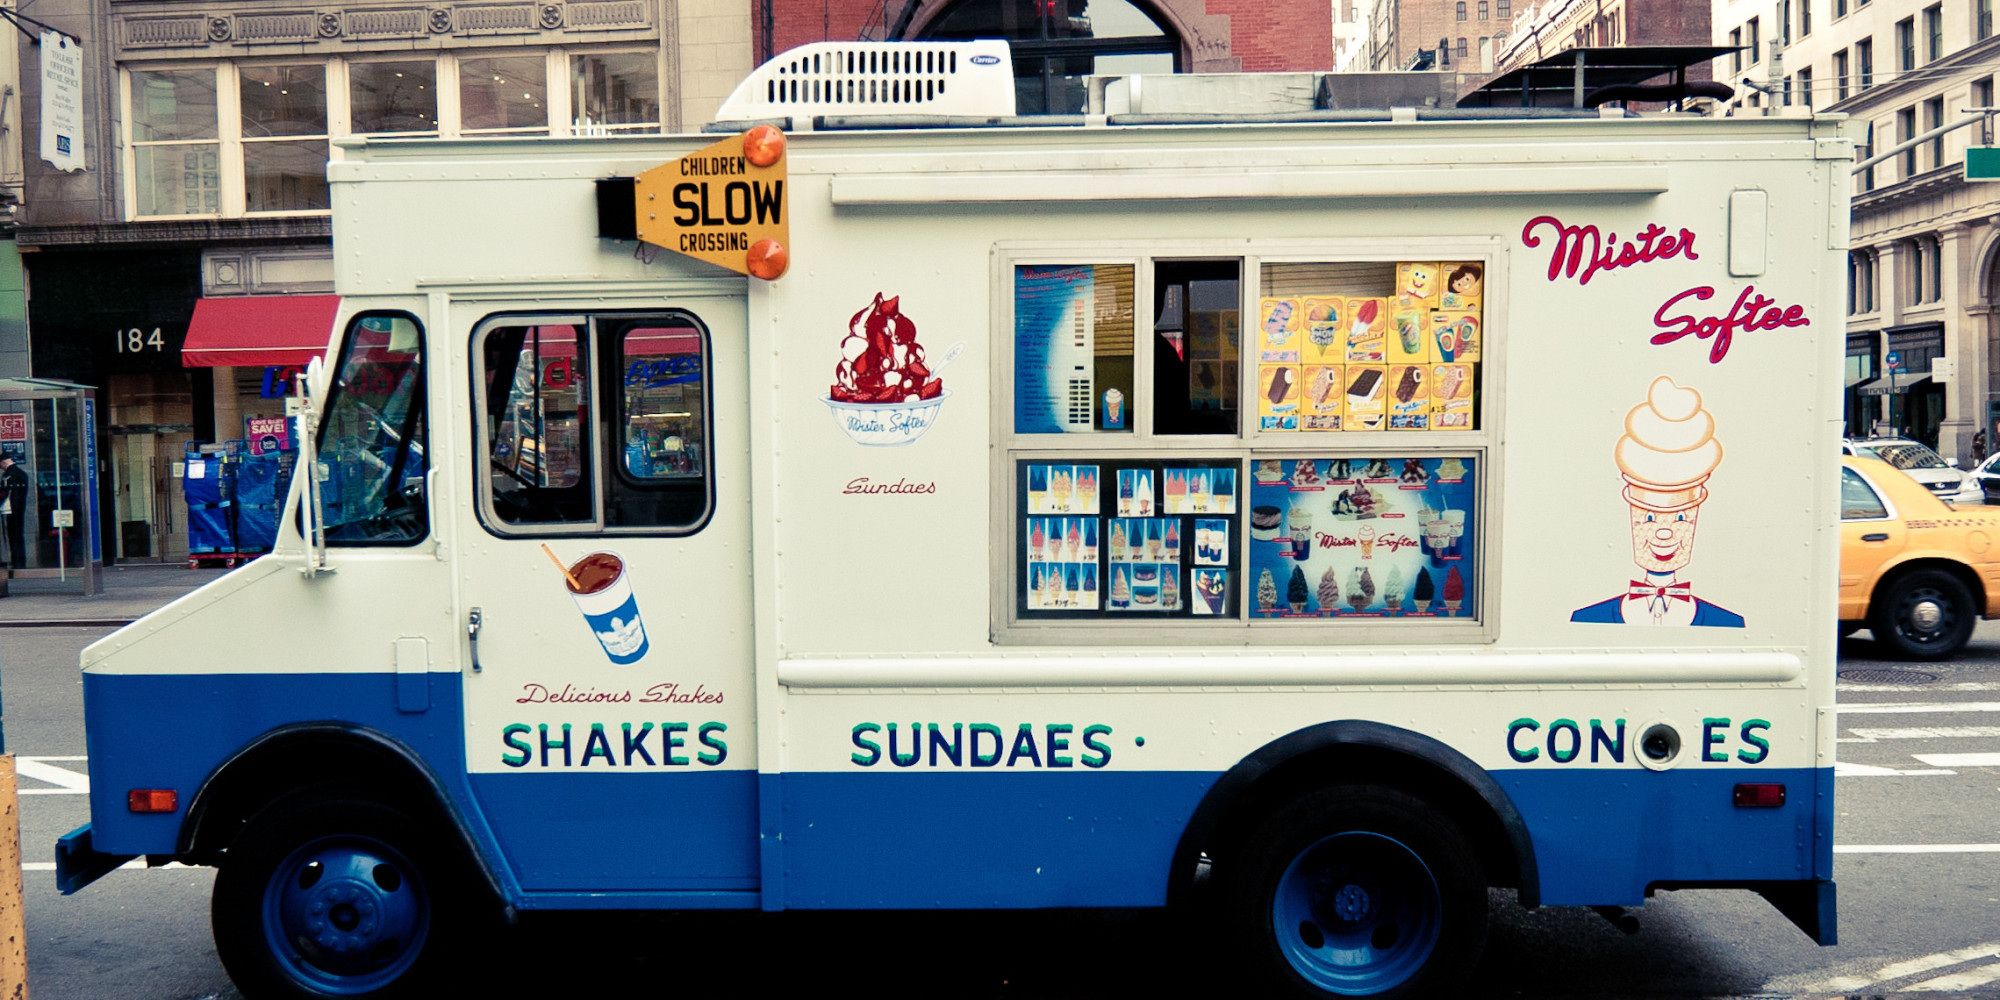 All the treats scored from the ice cream truck ranked from worst to absolute best huffpost